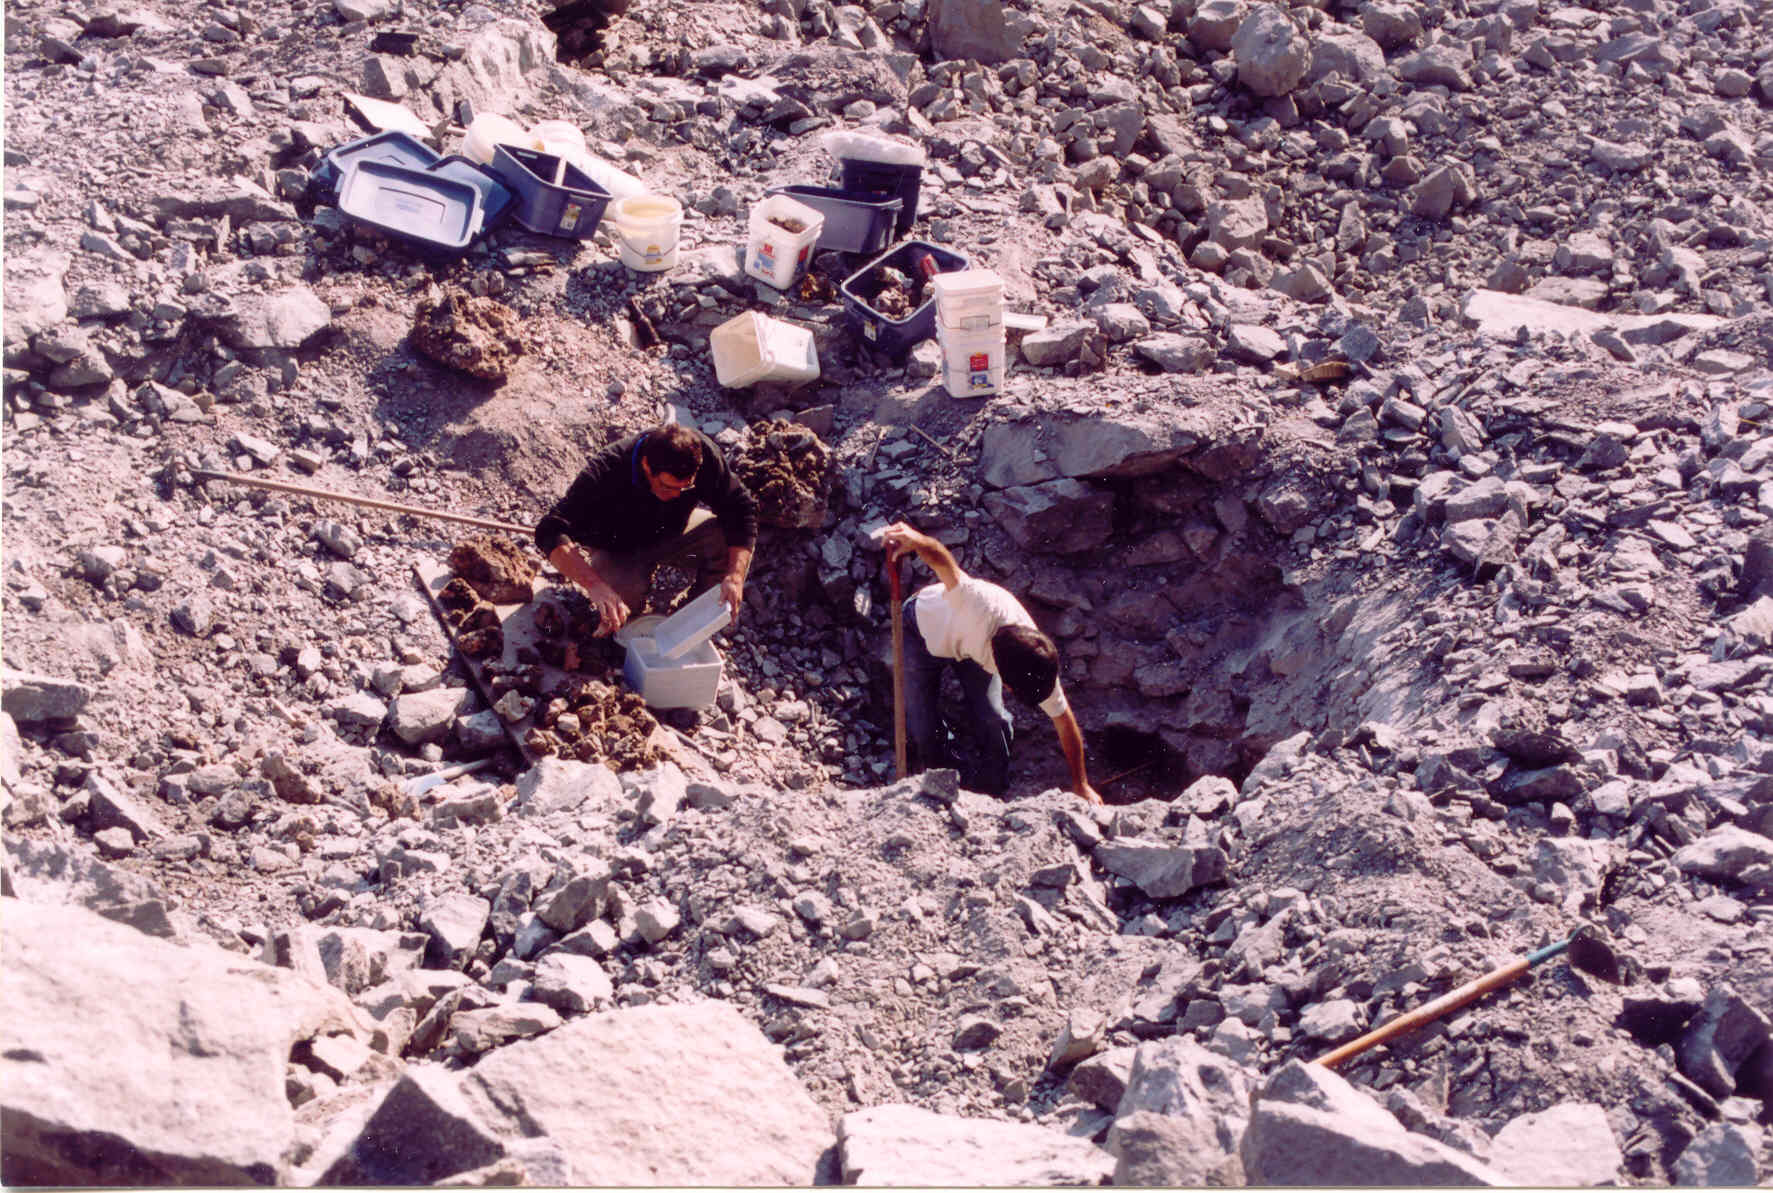 2003 Polylithionite Pocket was 14 feet deep.